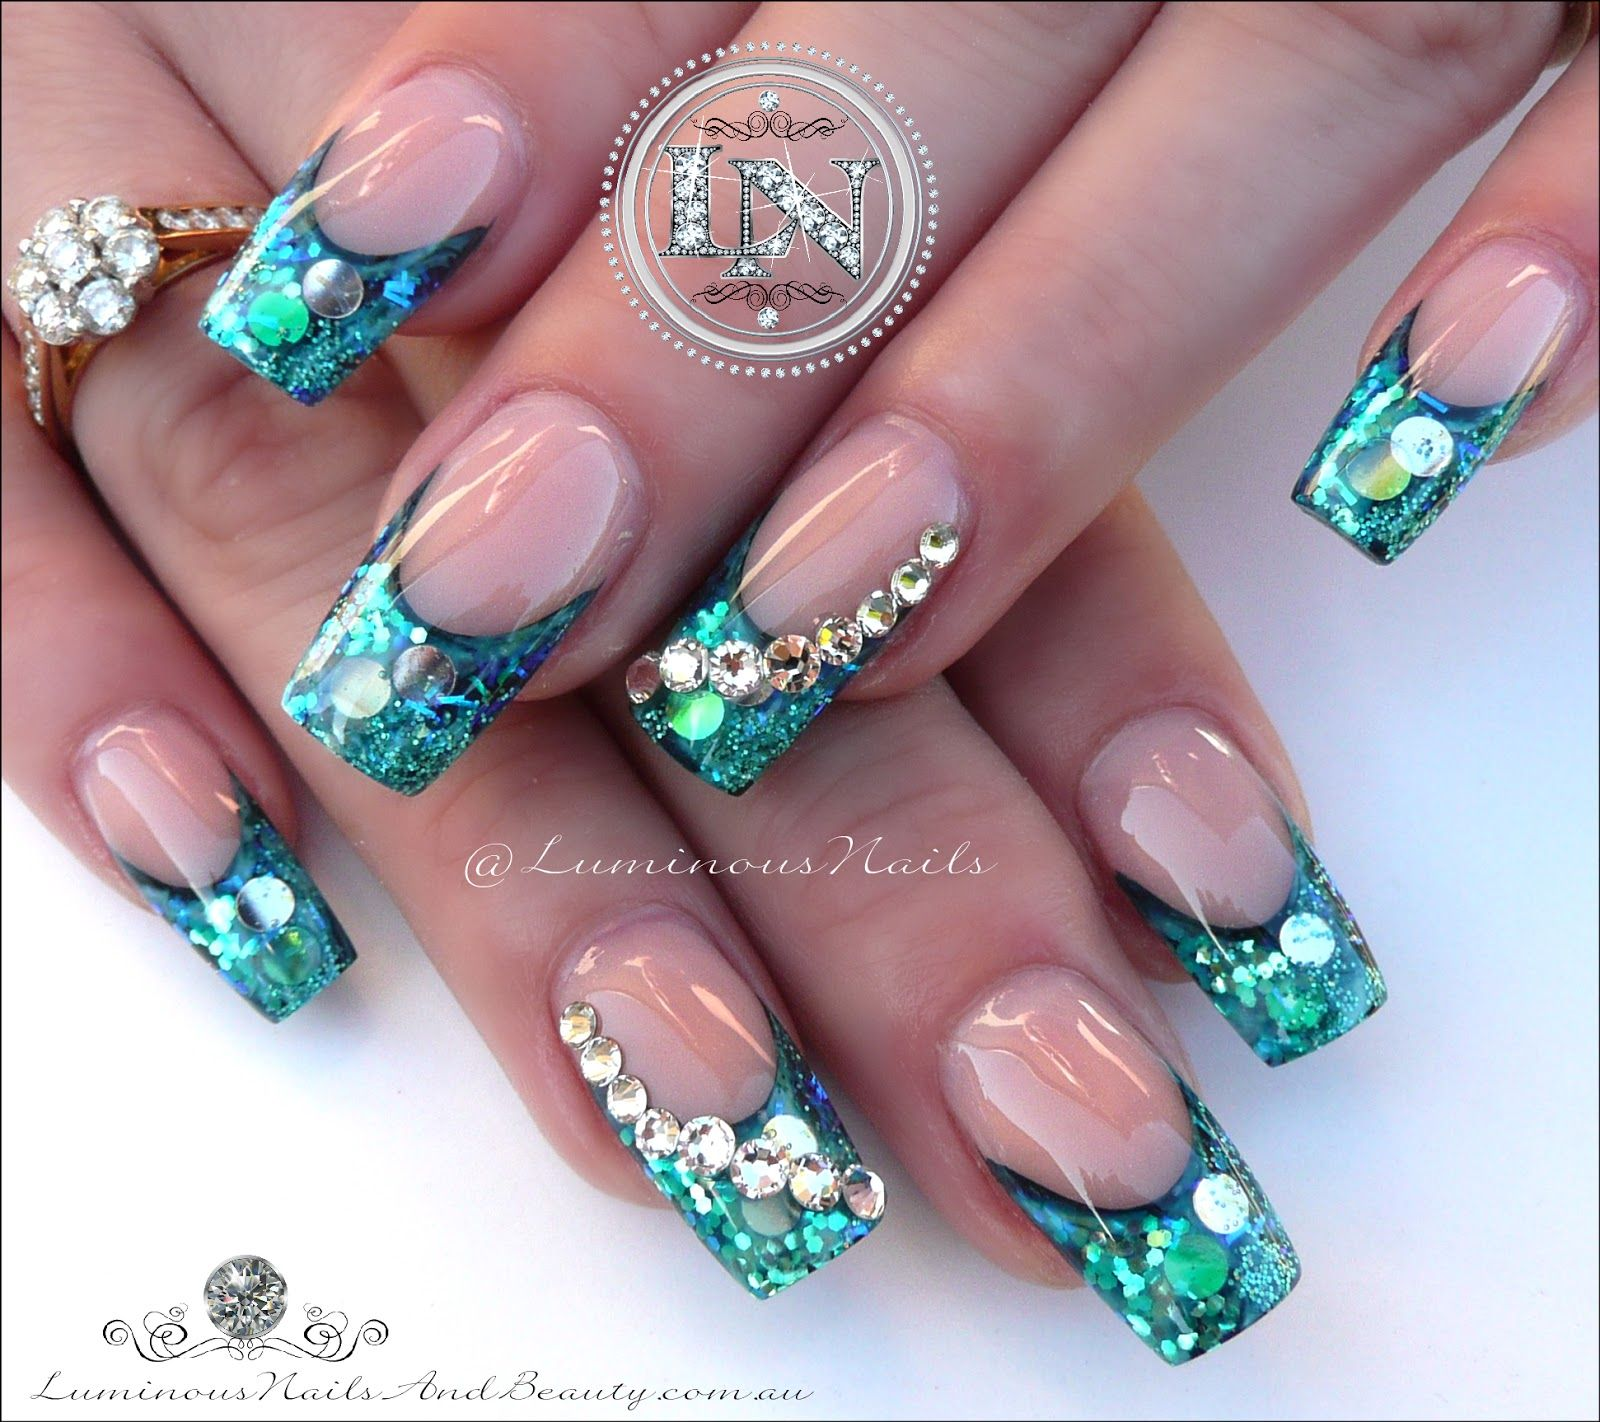 Paua Shell Effect Nails Very Popular Set Sculptured Acrylic With